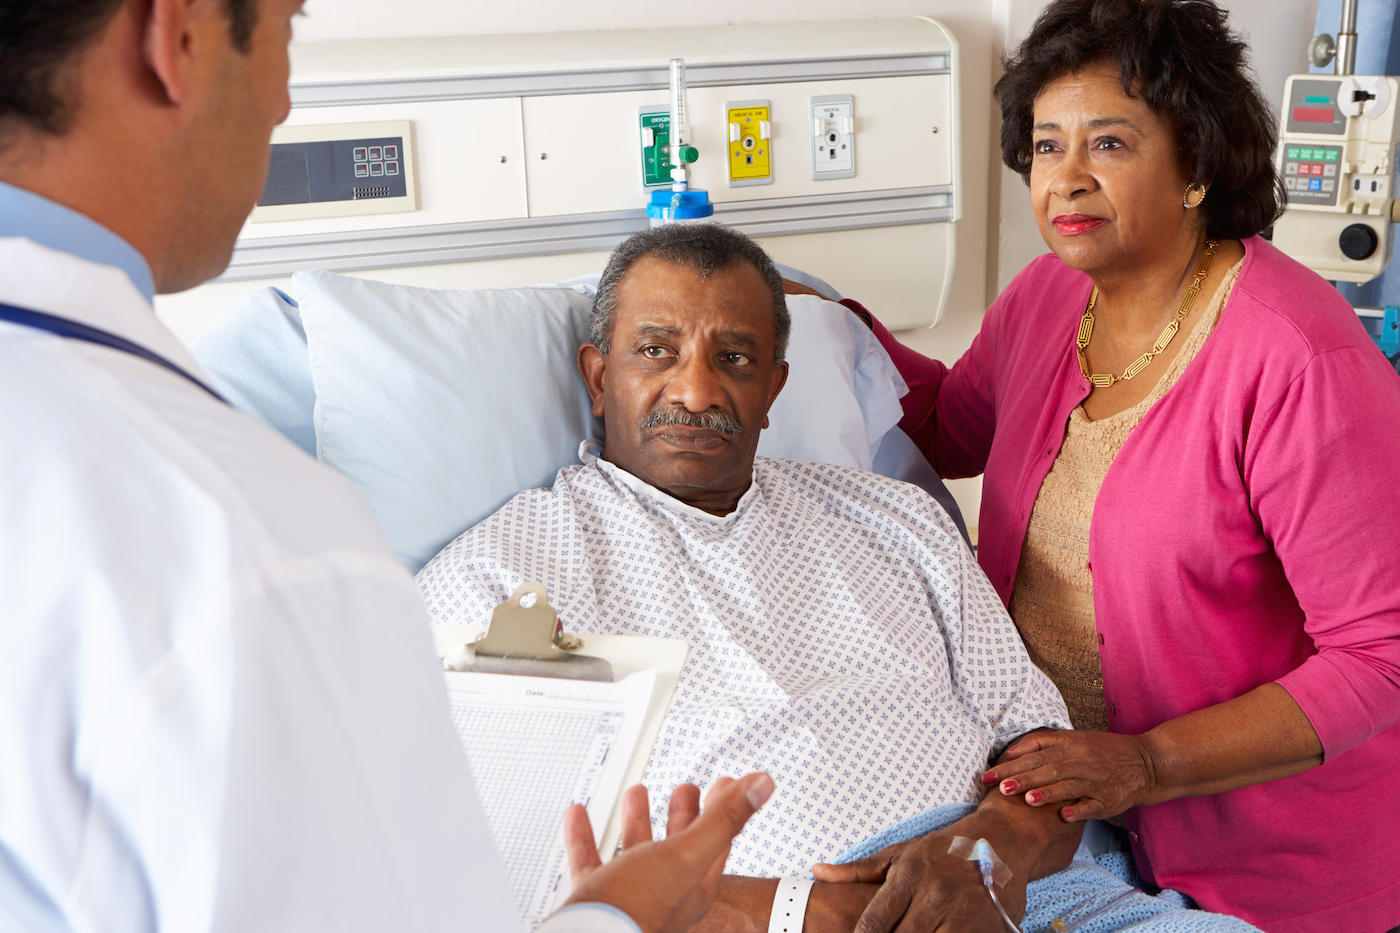 Doctor consults with couple in hospital room